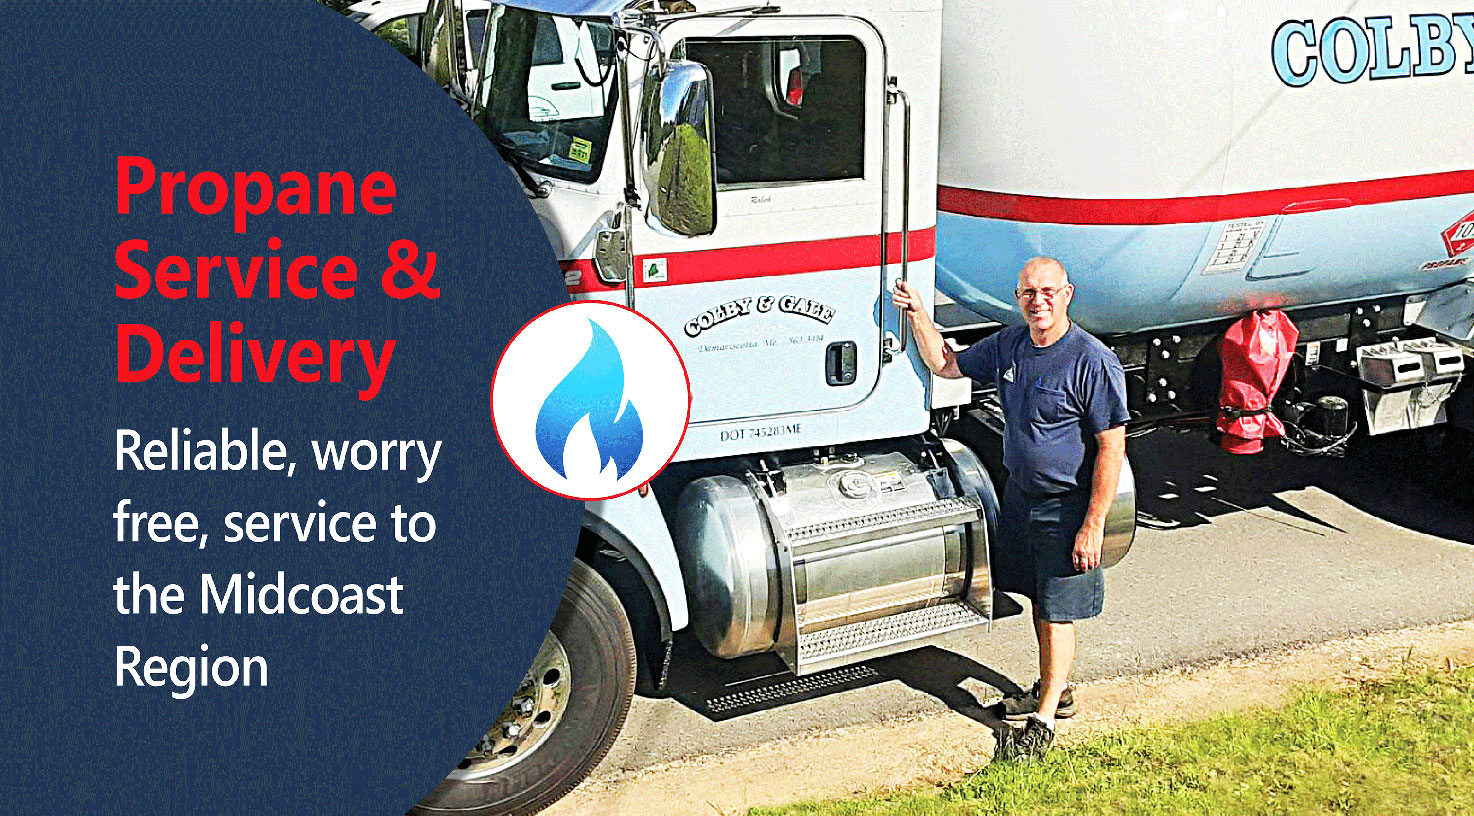 An employee at Colby & Gale stands beside a Propane delivery truck